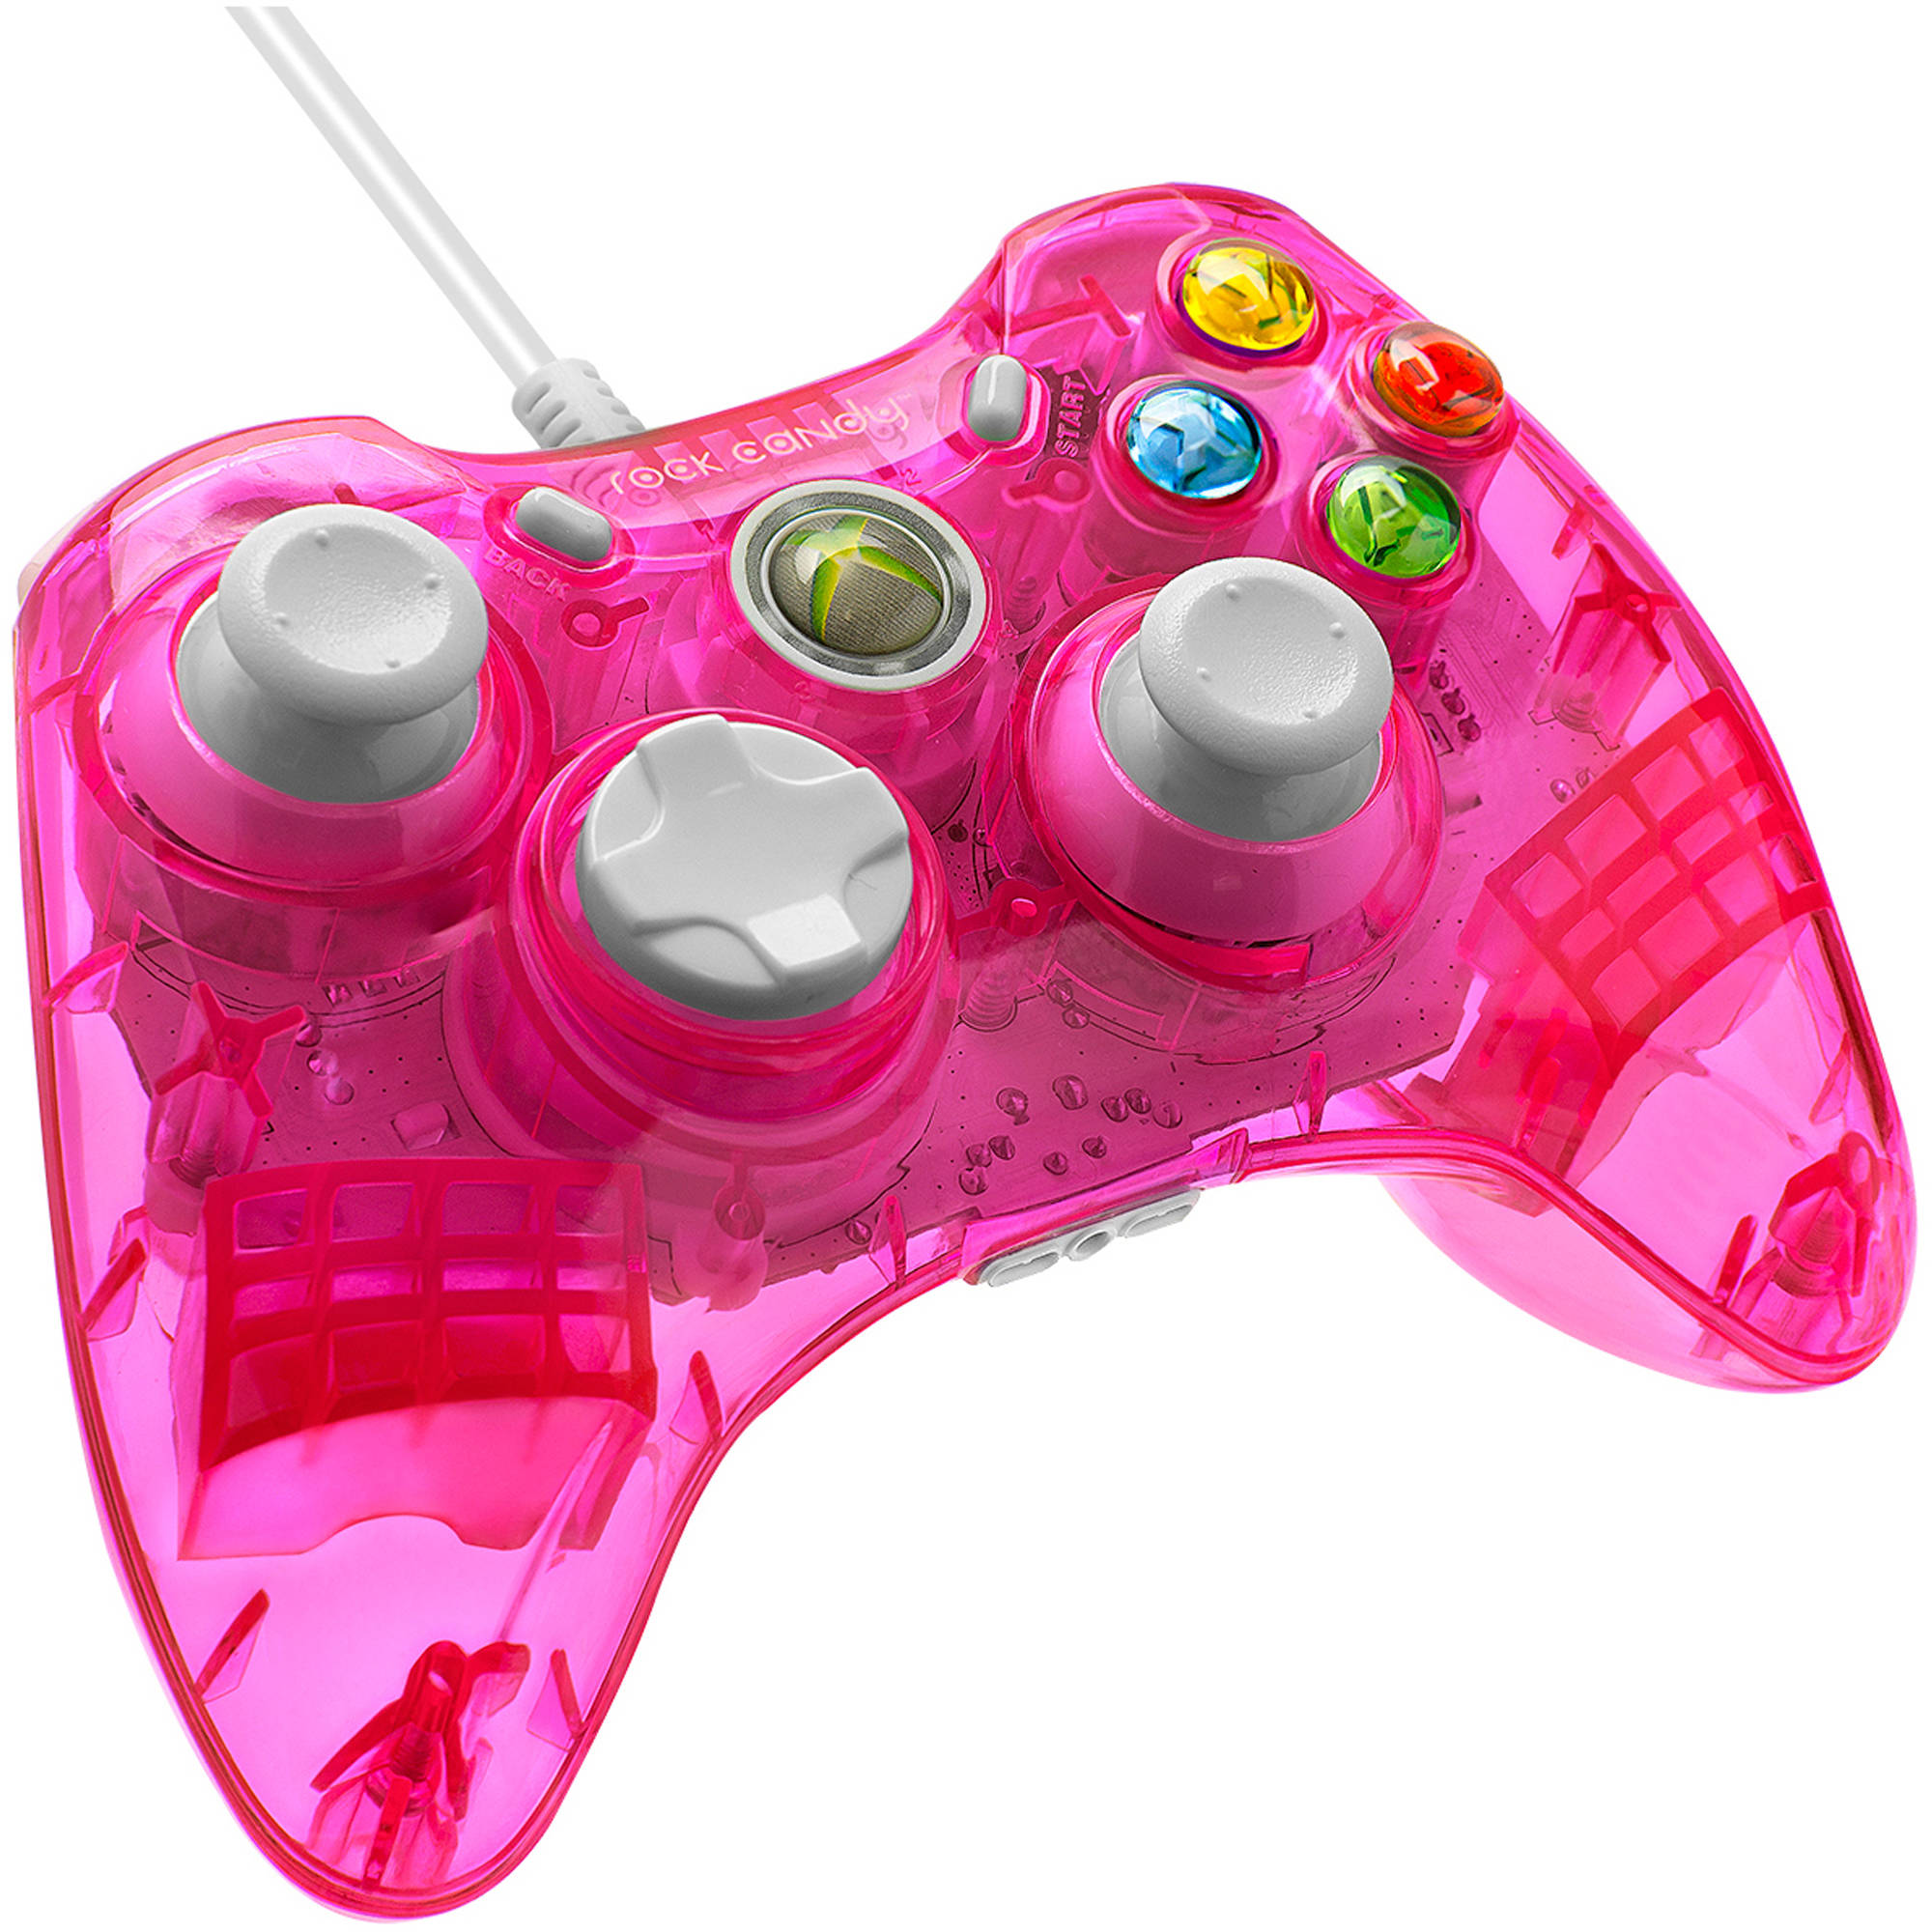 Rock Candy Wired Controller for Xbox 360, Pink Palooza